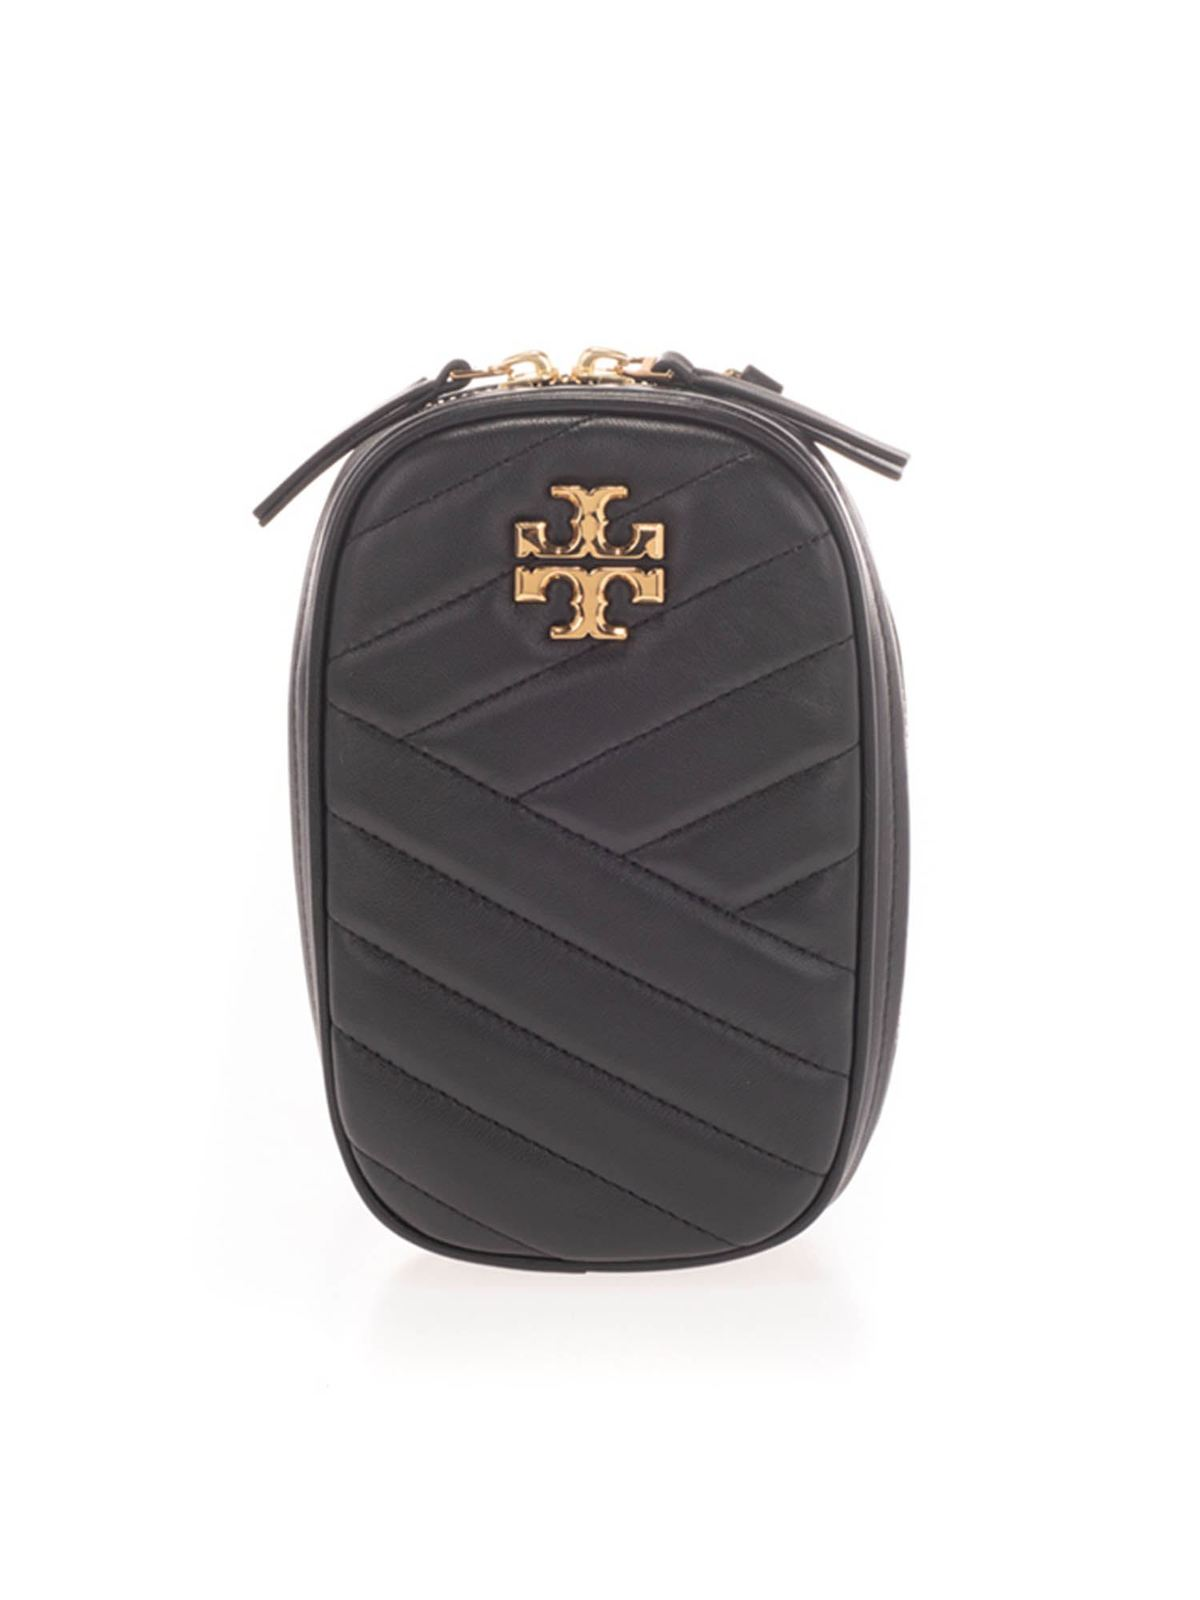 Tory Burch QUILTED LEATHER POUCH IN BLACK